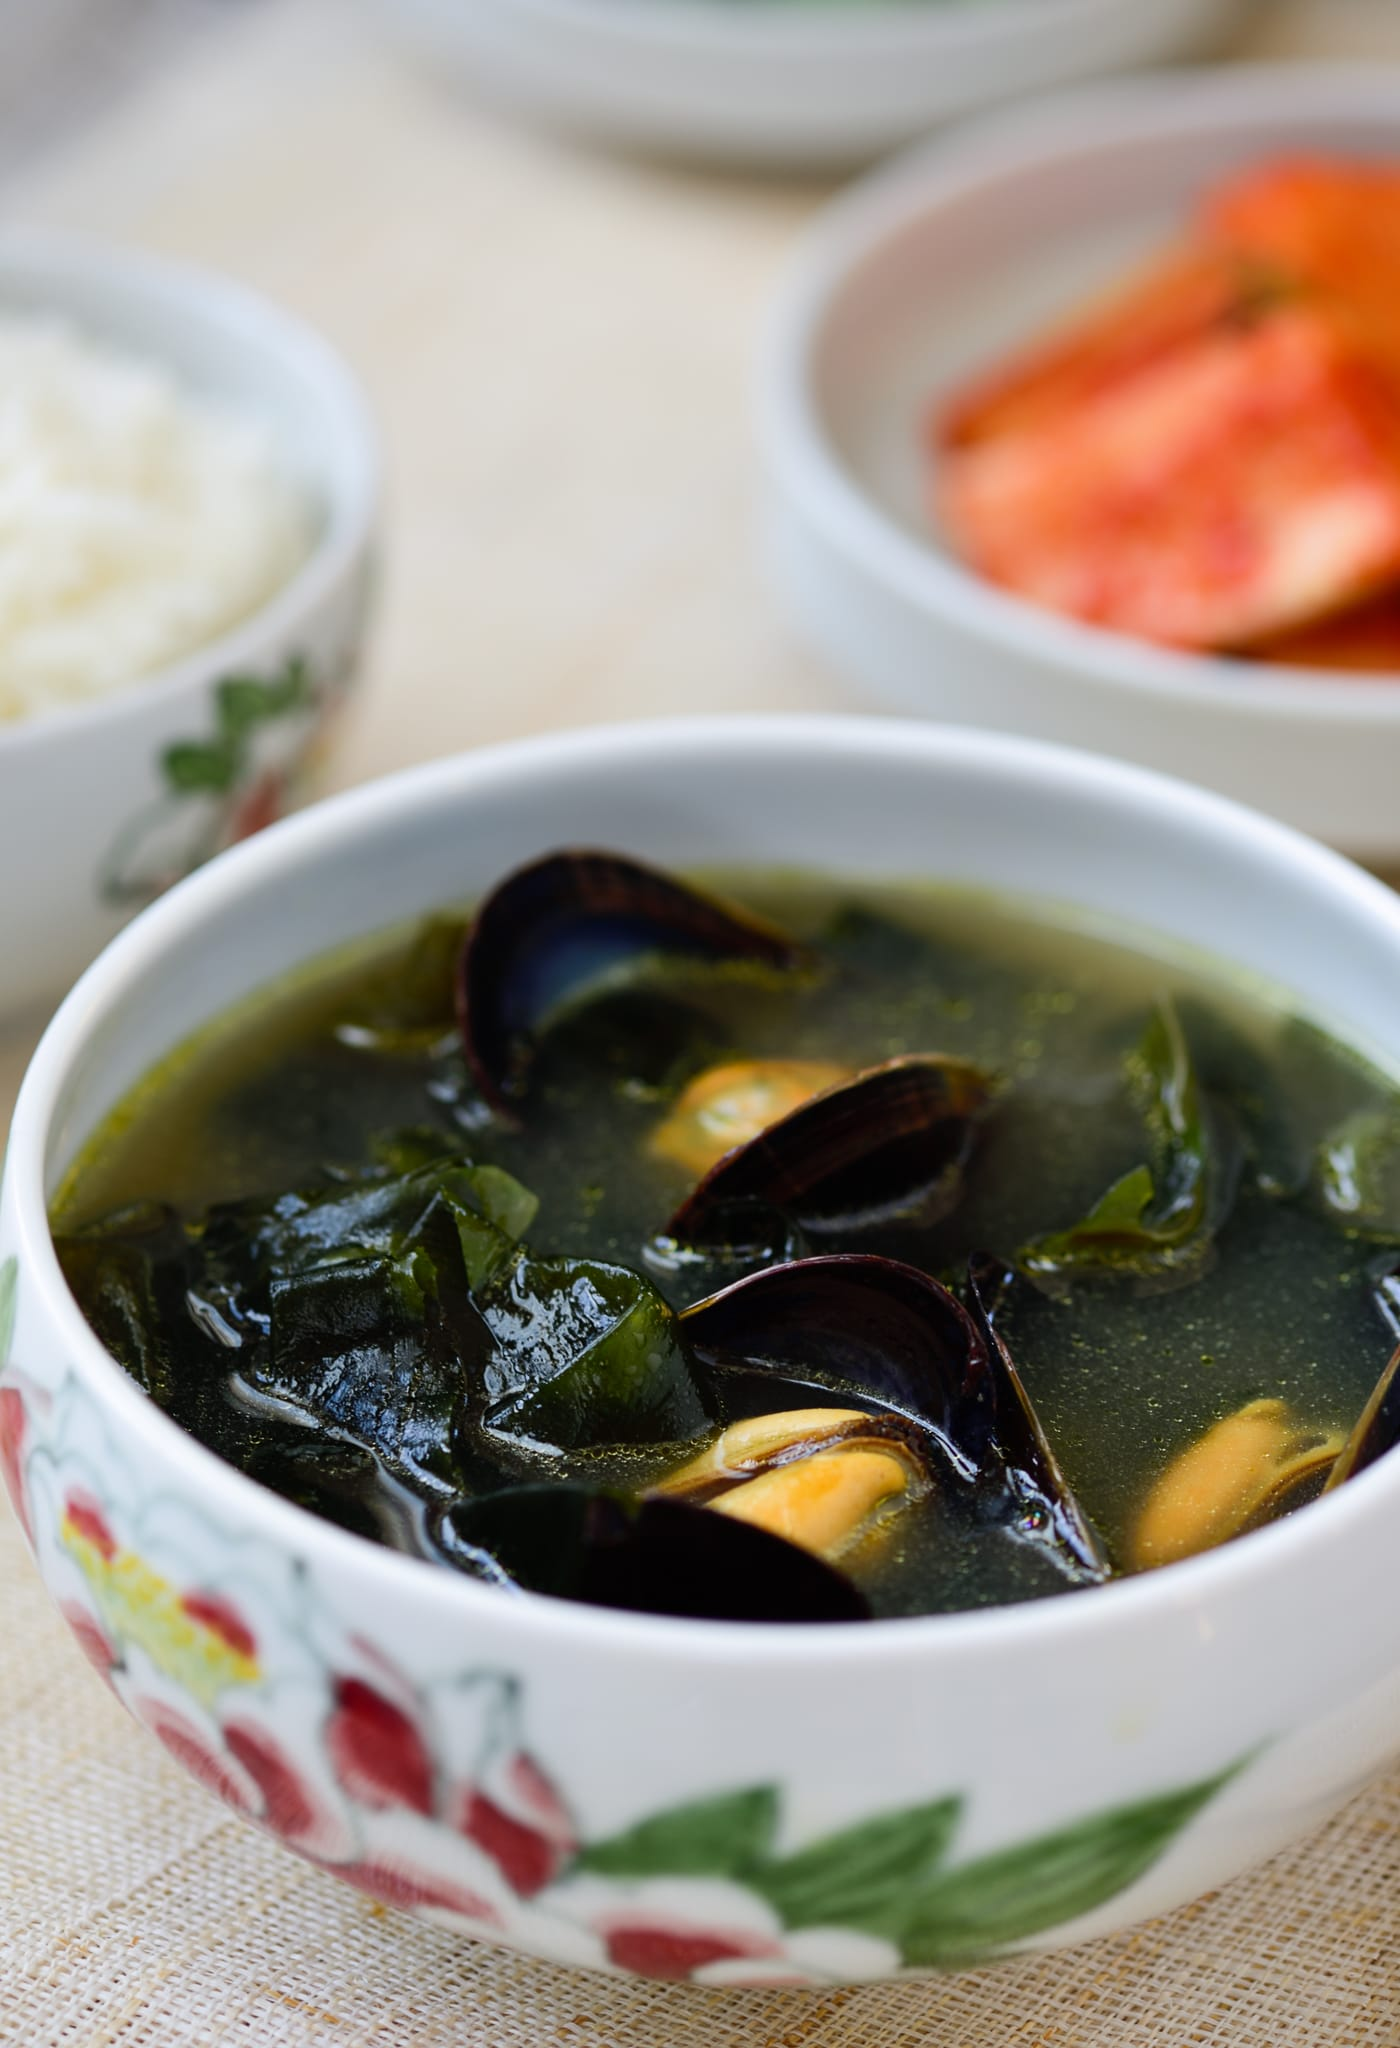 Korean seaweed soup made with mussels